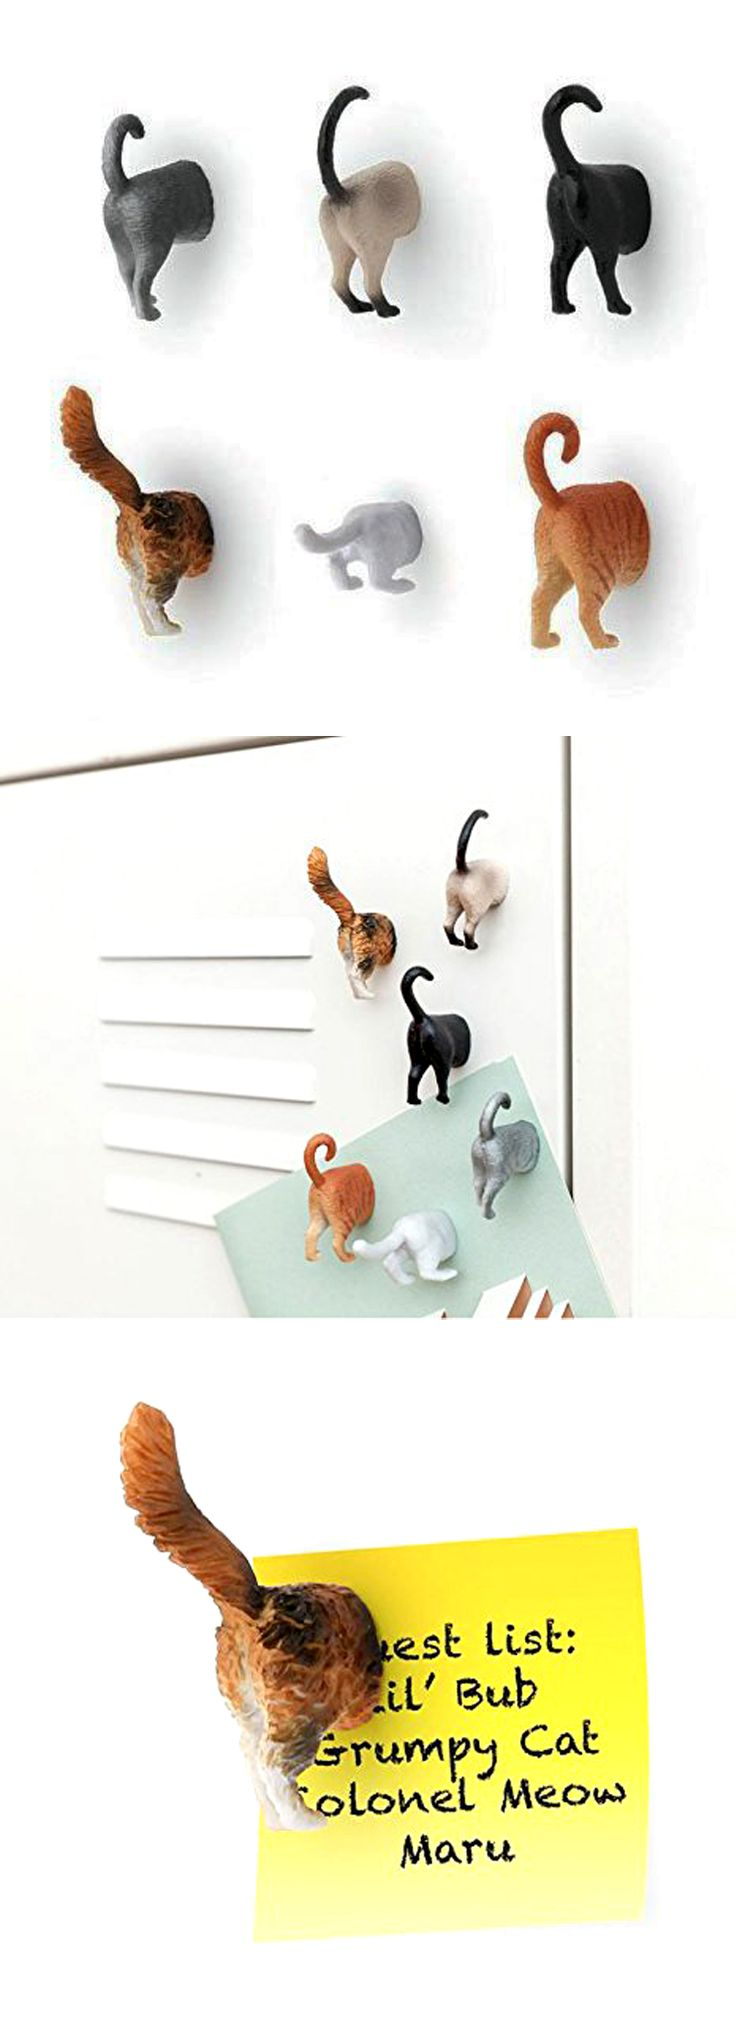 Purrfect for hanging on the refrigerator than boring round, silver magnets. Check it out==>  http://gwyl.io/kikkerland-cat-butt-magnets/